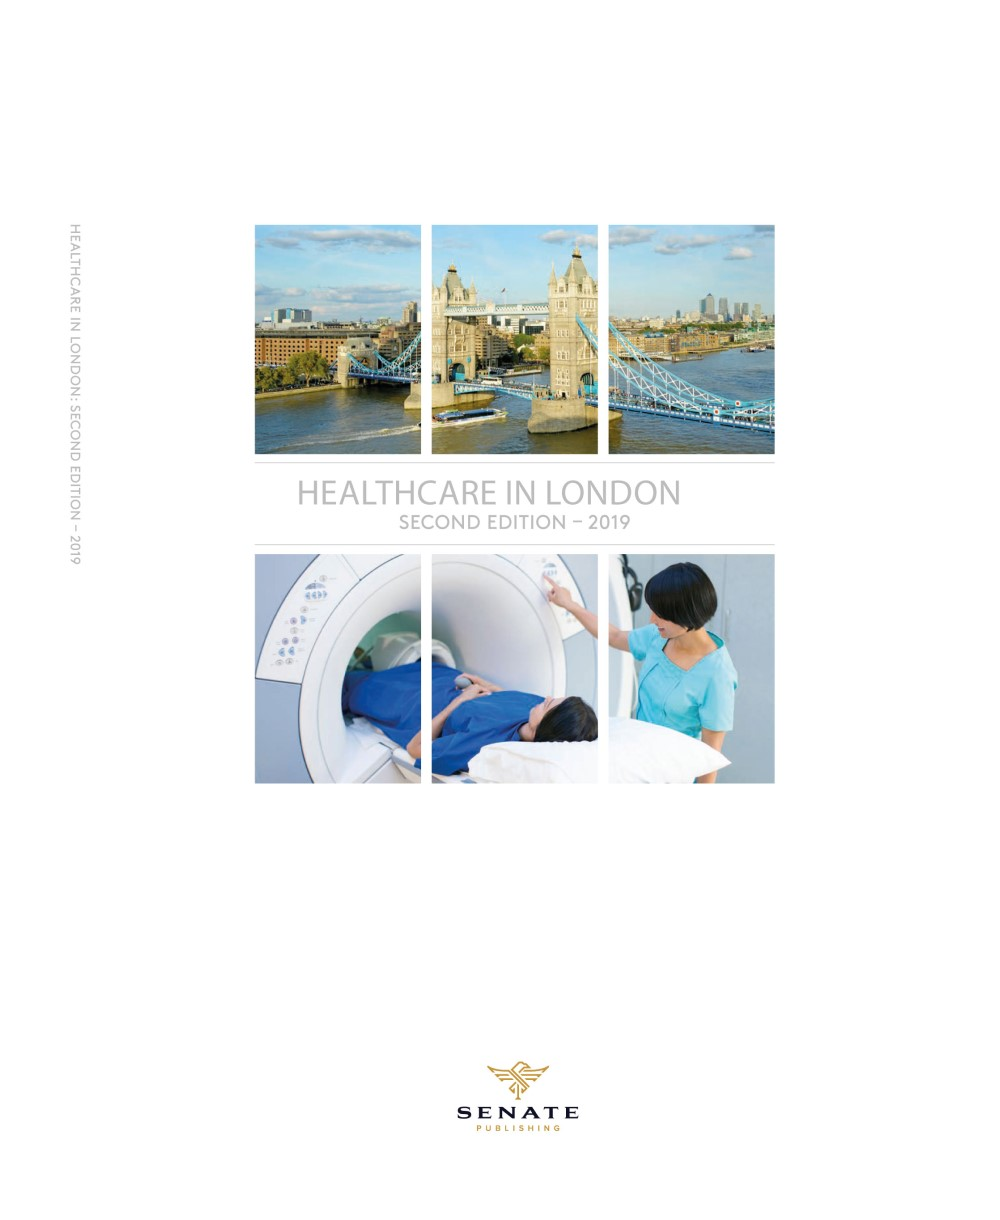 Healthcare-in-London-Second-Edition.jpg (2)